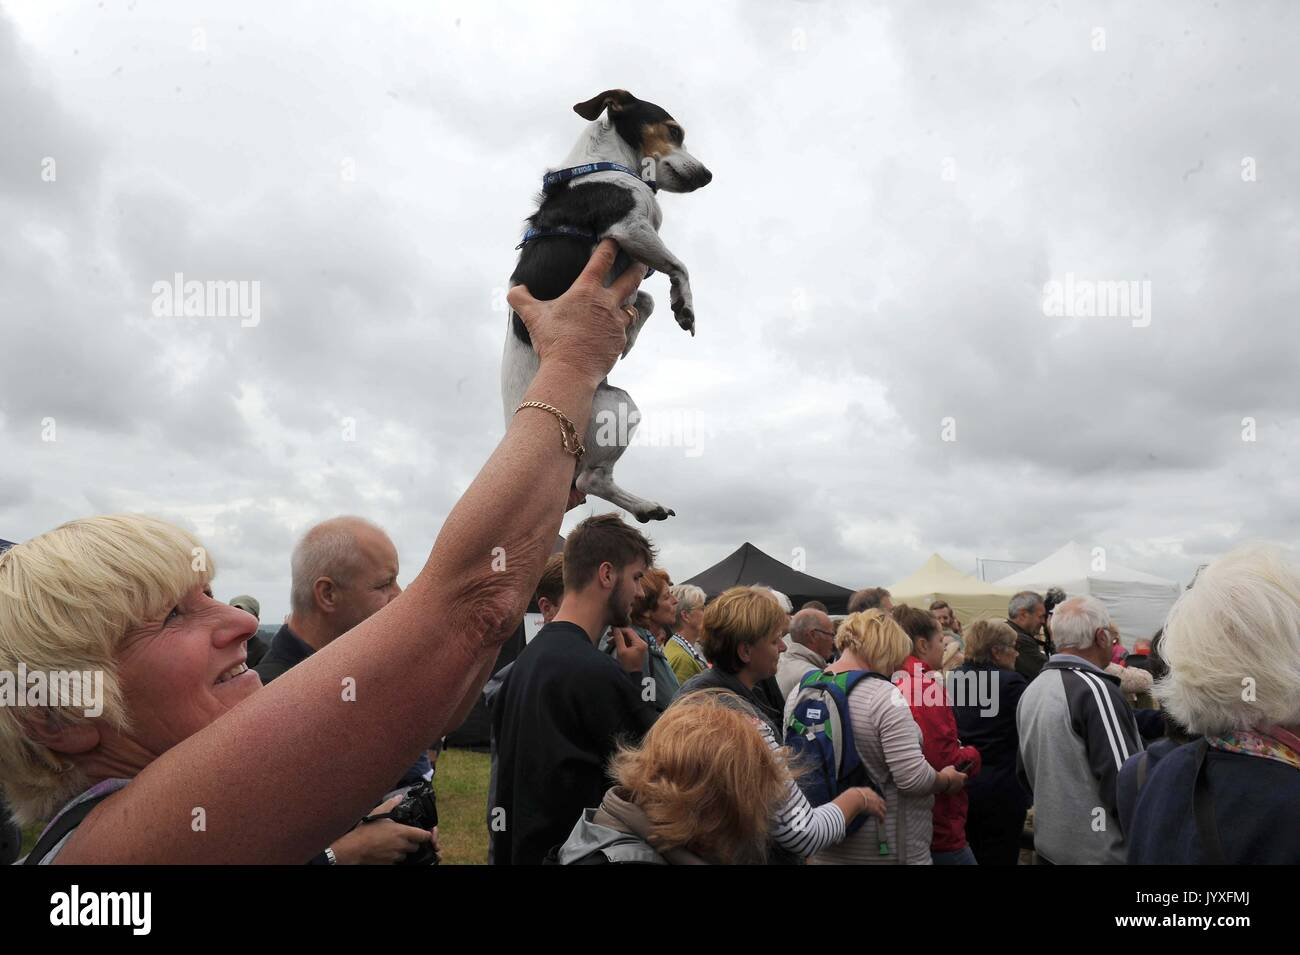 Straining for a better view of the dog display, Buckham Fair, Dorset, UK Credit: Finnbarr Webster/Alamy Live News - Stock Image